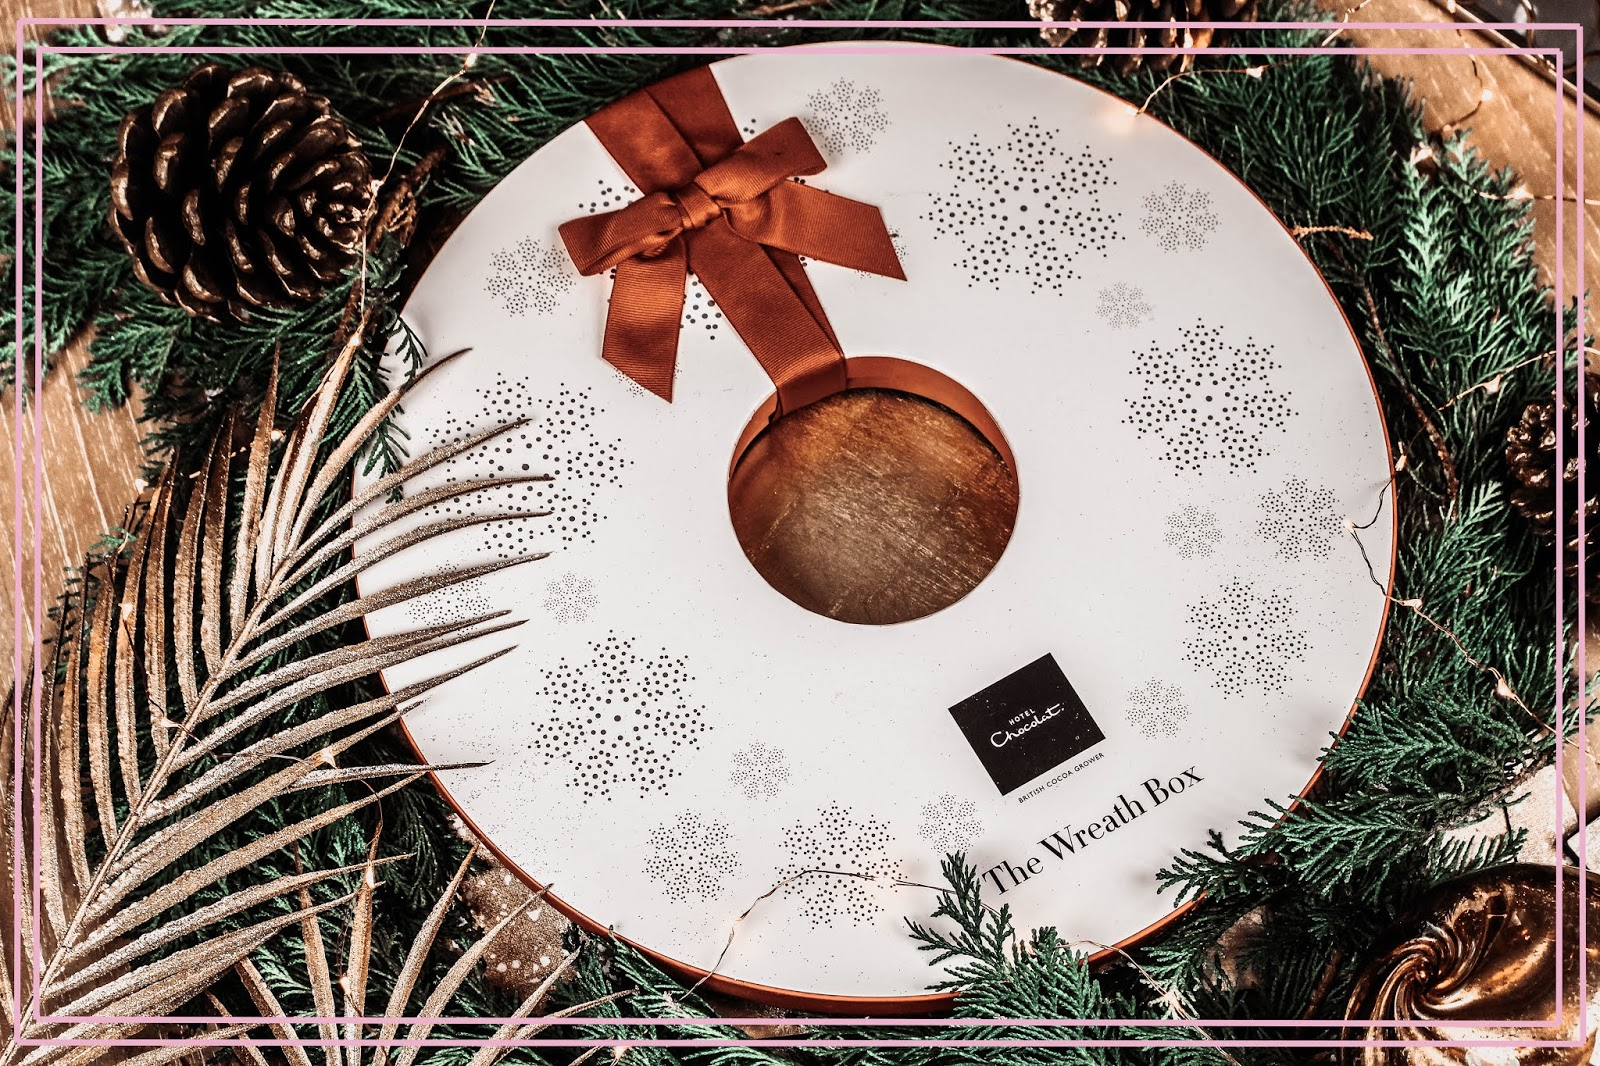 Hotel Chocolat Christmas Worldwide Giveaway December 2018